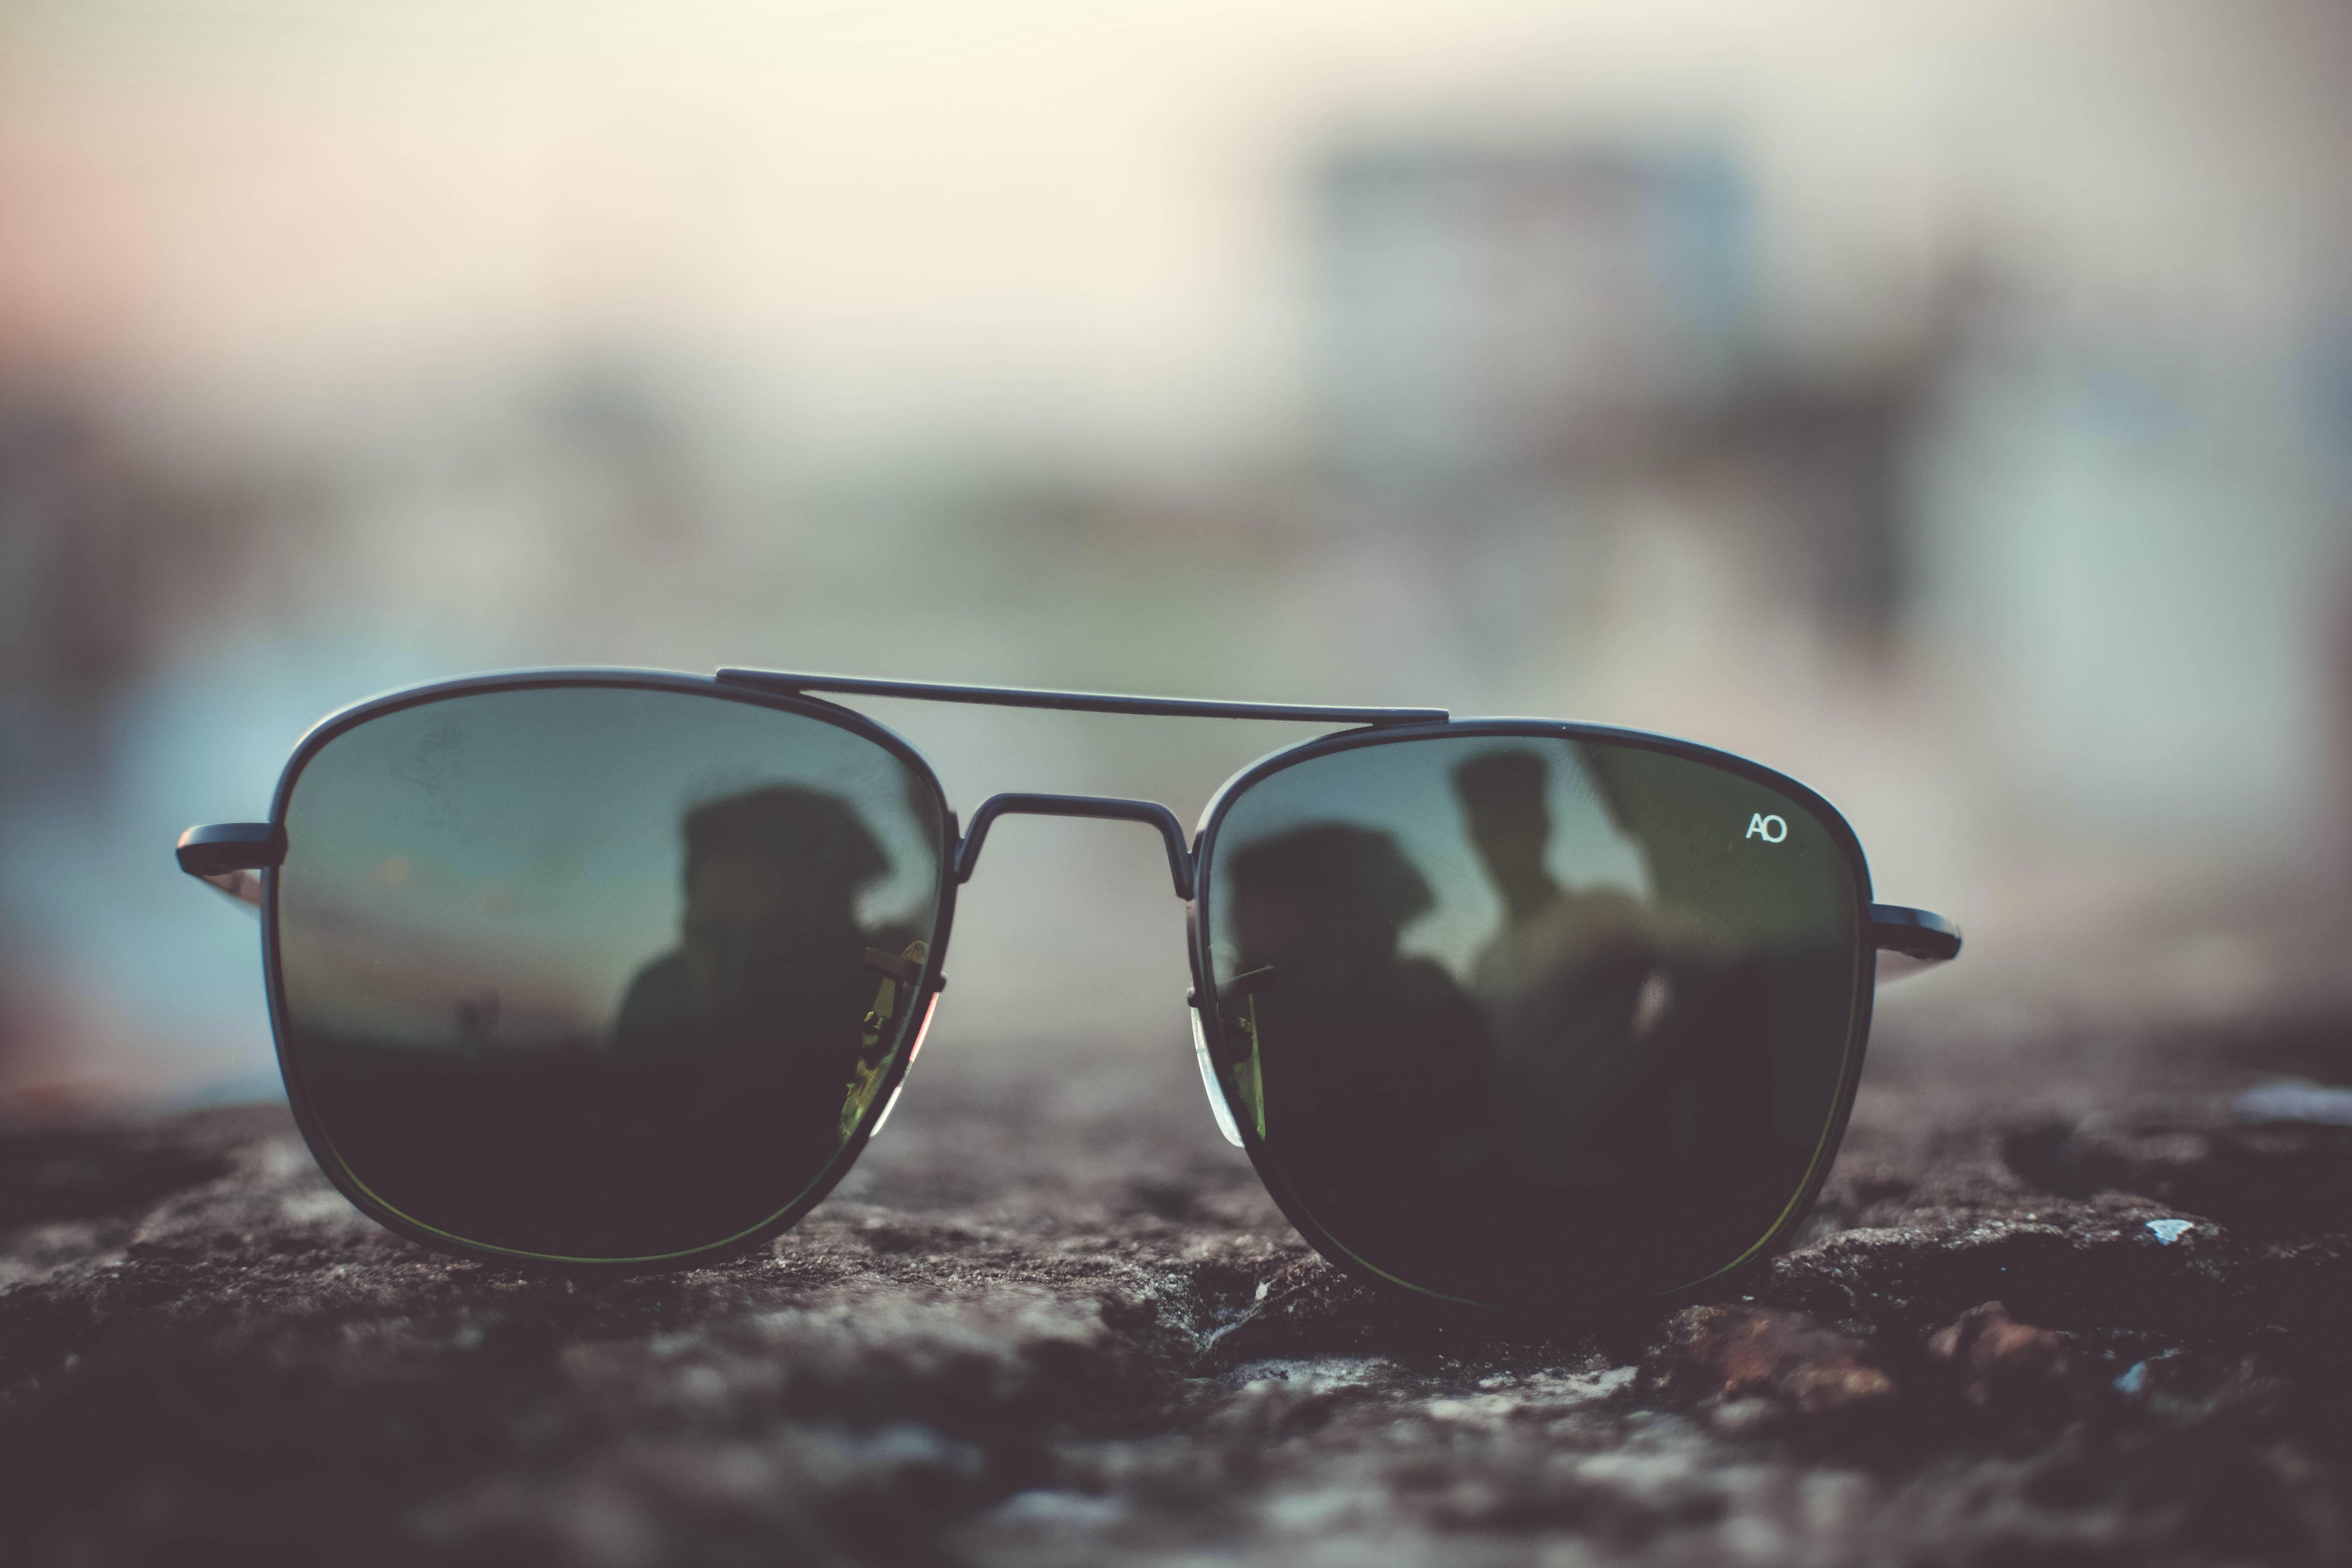 Focus Photo of Black Aviator-style Sunglasses on Surface